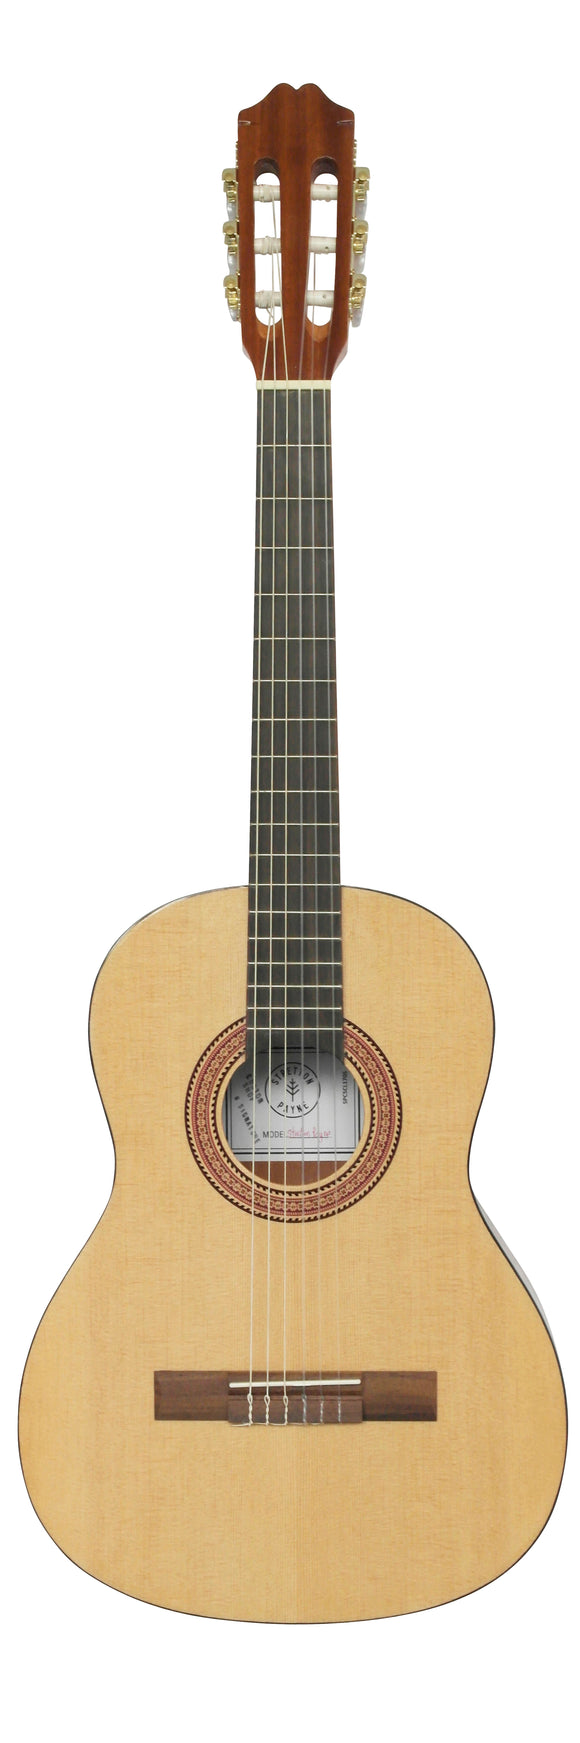 Stretton Payne CL170S MASTER 3/4 Size Solid Spruce Top Soundboard Classical Spanish Acoustic Guitar